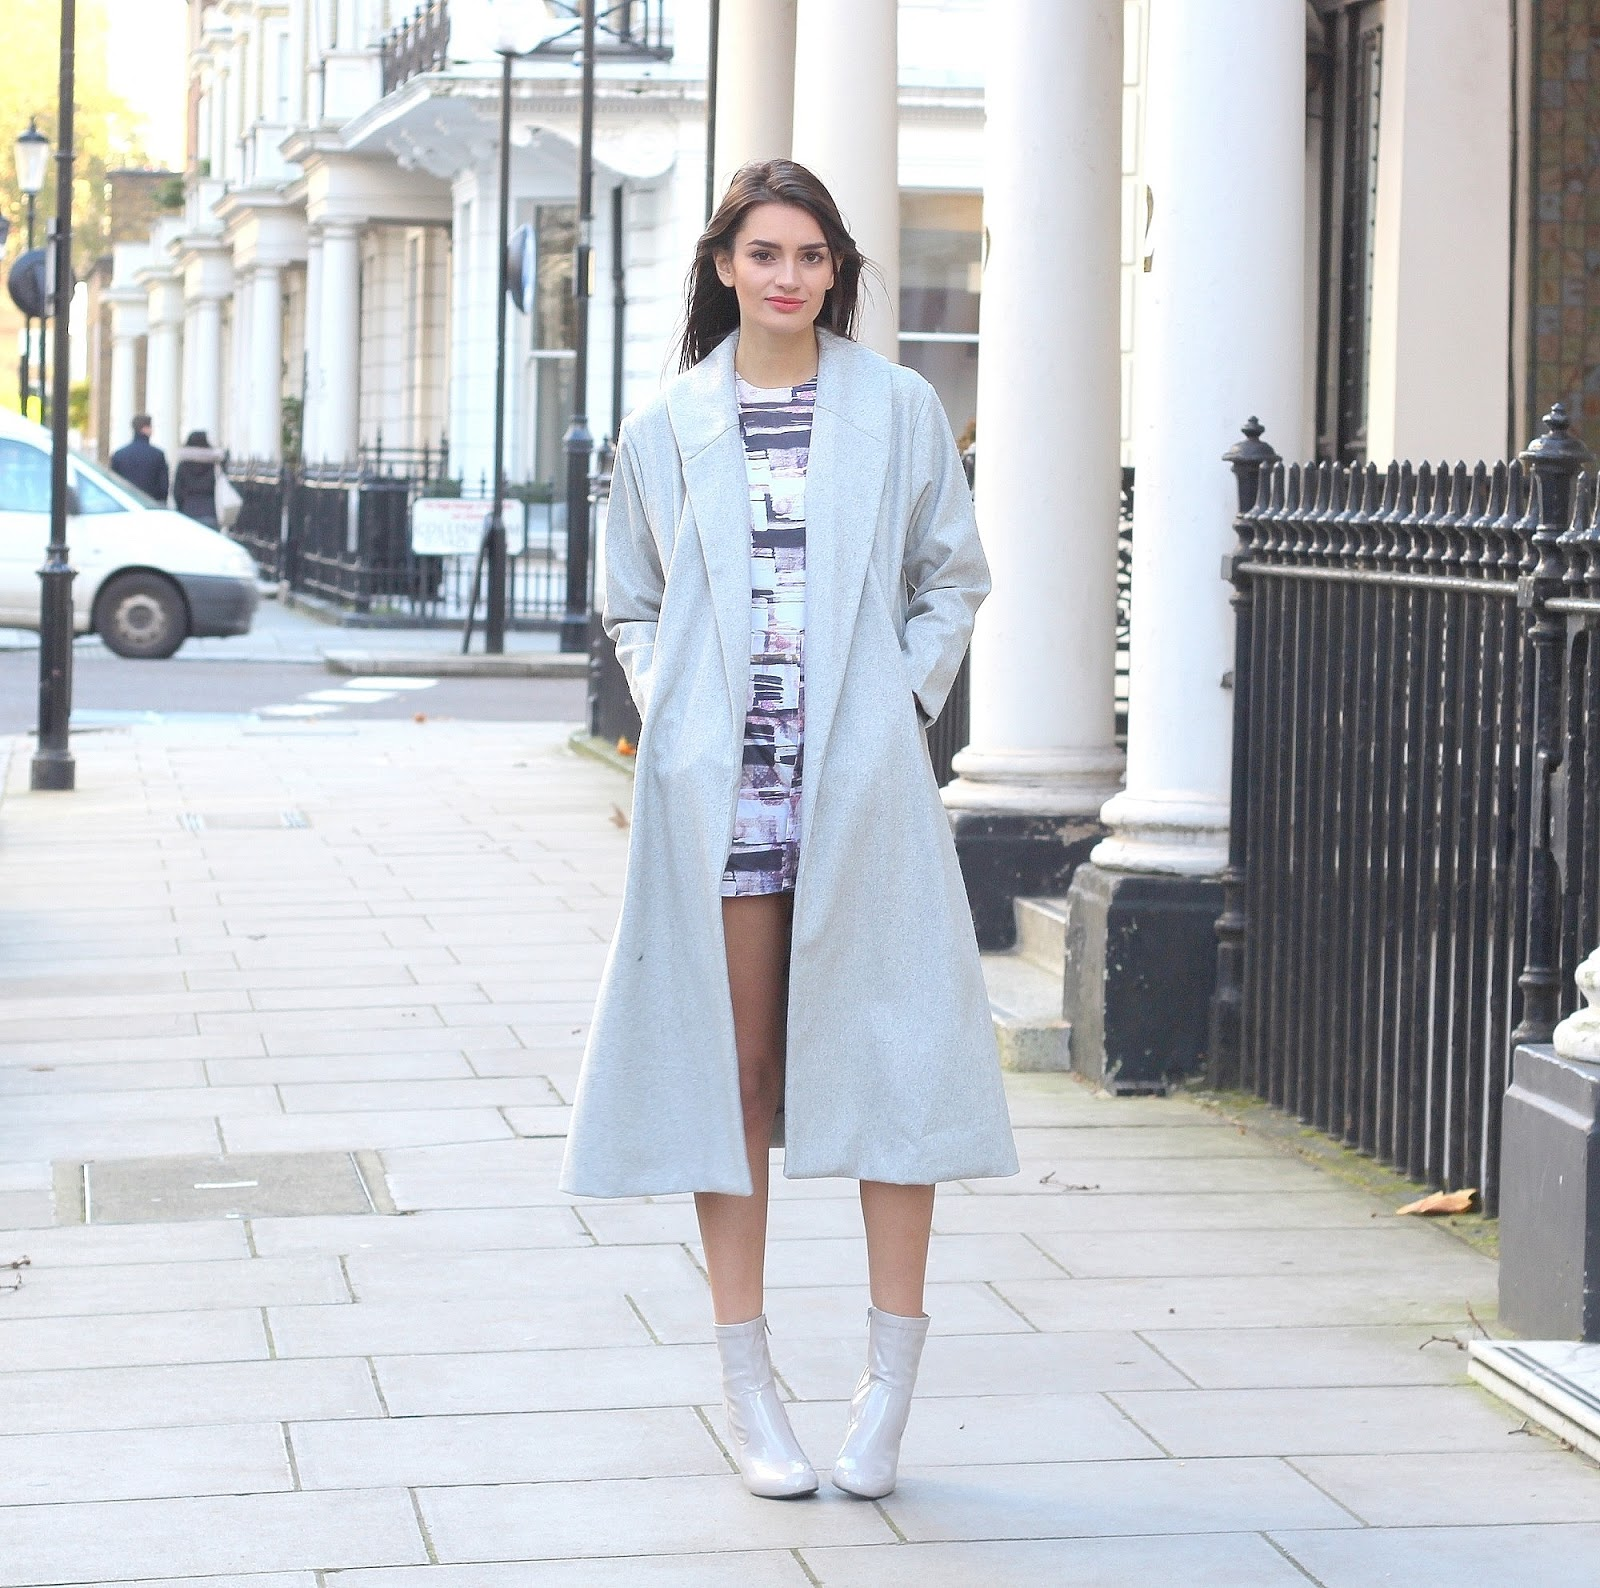 peexo fashion blogger wearing grey